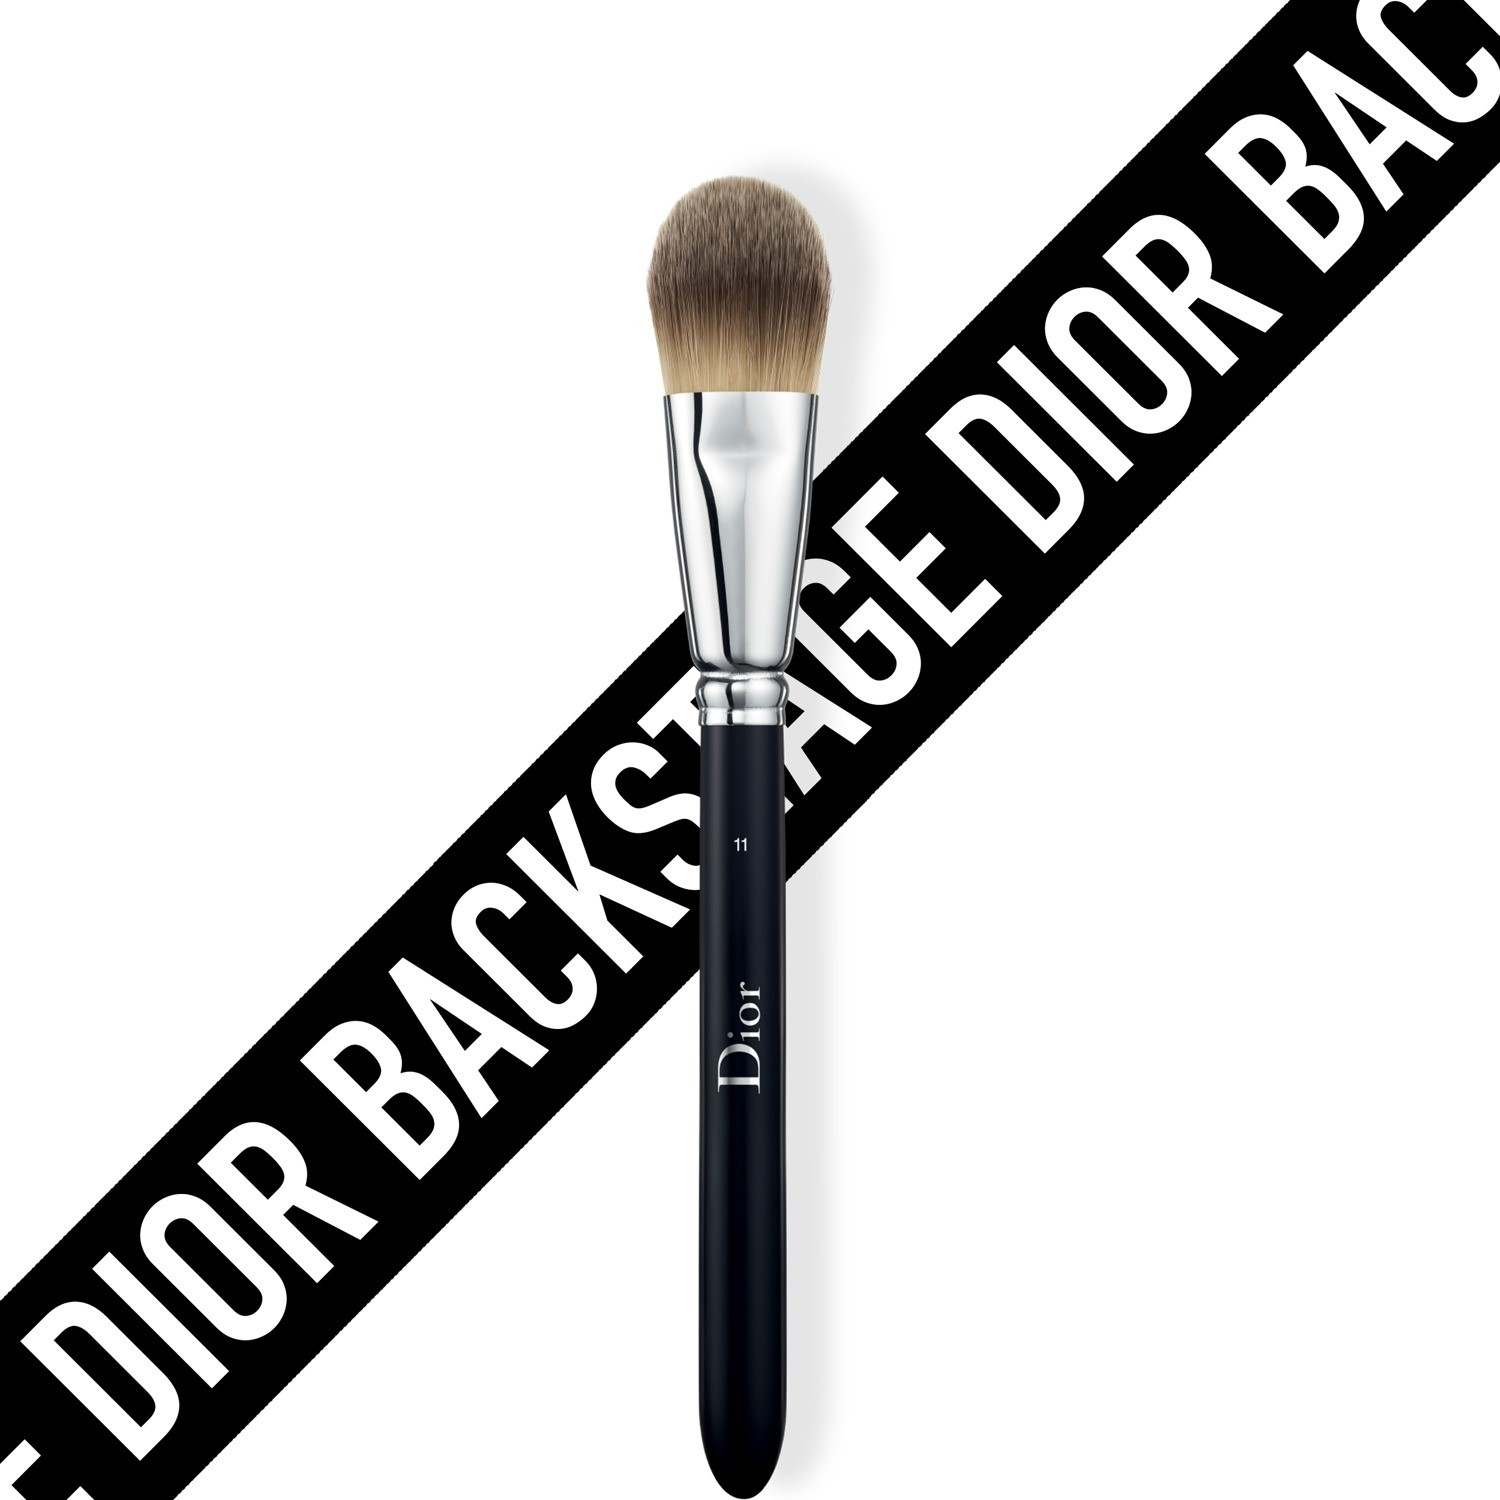 1500x1500 Buy Light Coverage Fluid Foundation Brush Online Sephora Uae